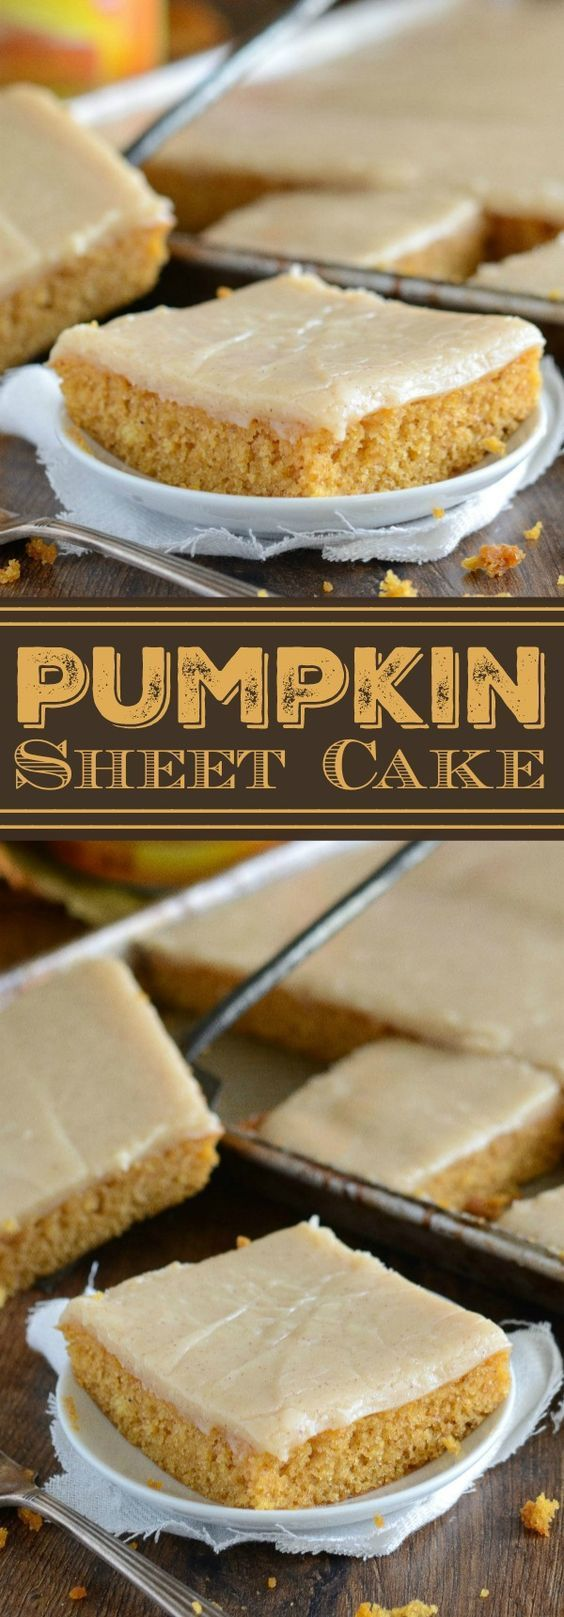 Pumpkin Sheet Cake with Cinnamon Cream Cheese Frosting Recipe via The Novice Chef - This cake only takes 30 minutes! This Pumpkin Sheet Cake is a moist spiced pumpkin cake that uses melted butter for easiness. Then you pour on some gorgeous cinnamon cream cheese frosting that sinks a little into the cake as it cools. It's pure heaven. The Best EASY Sheet Cakes Recipes - Simple and Quick Party Crowds Desserts for Holidays, Special Occasions and Family Celebrations